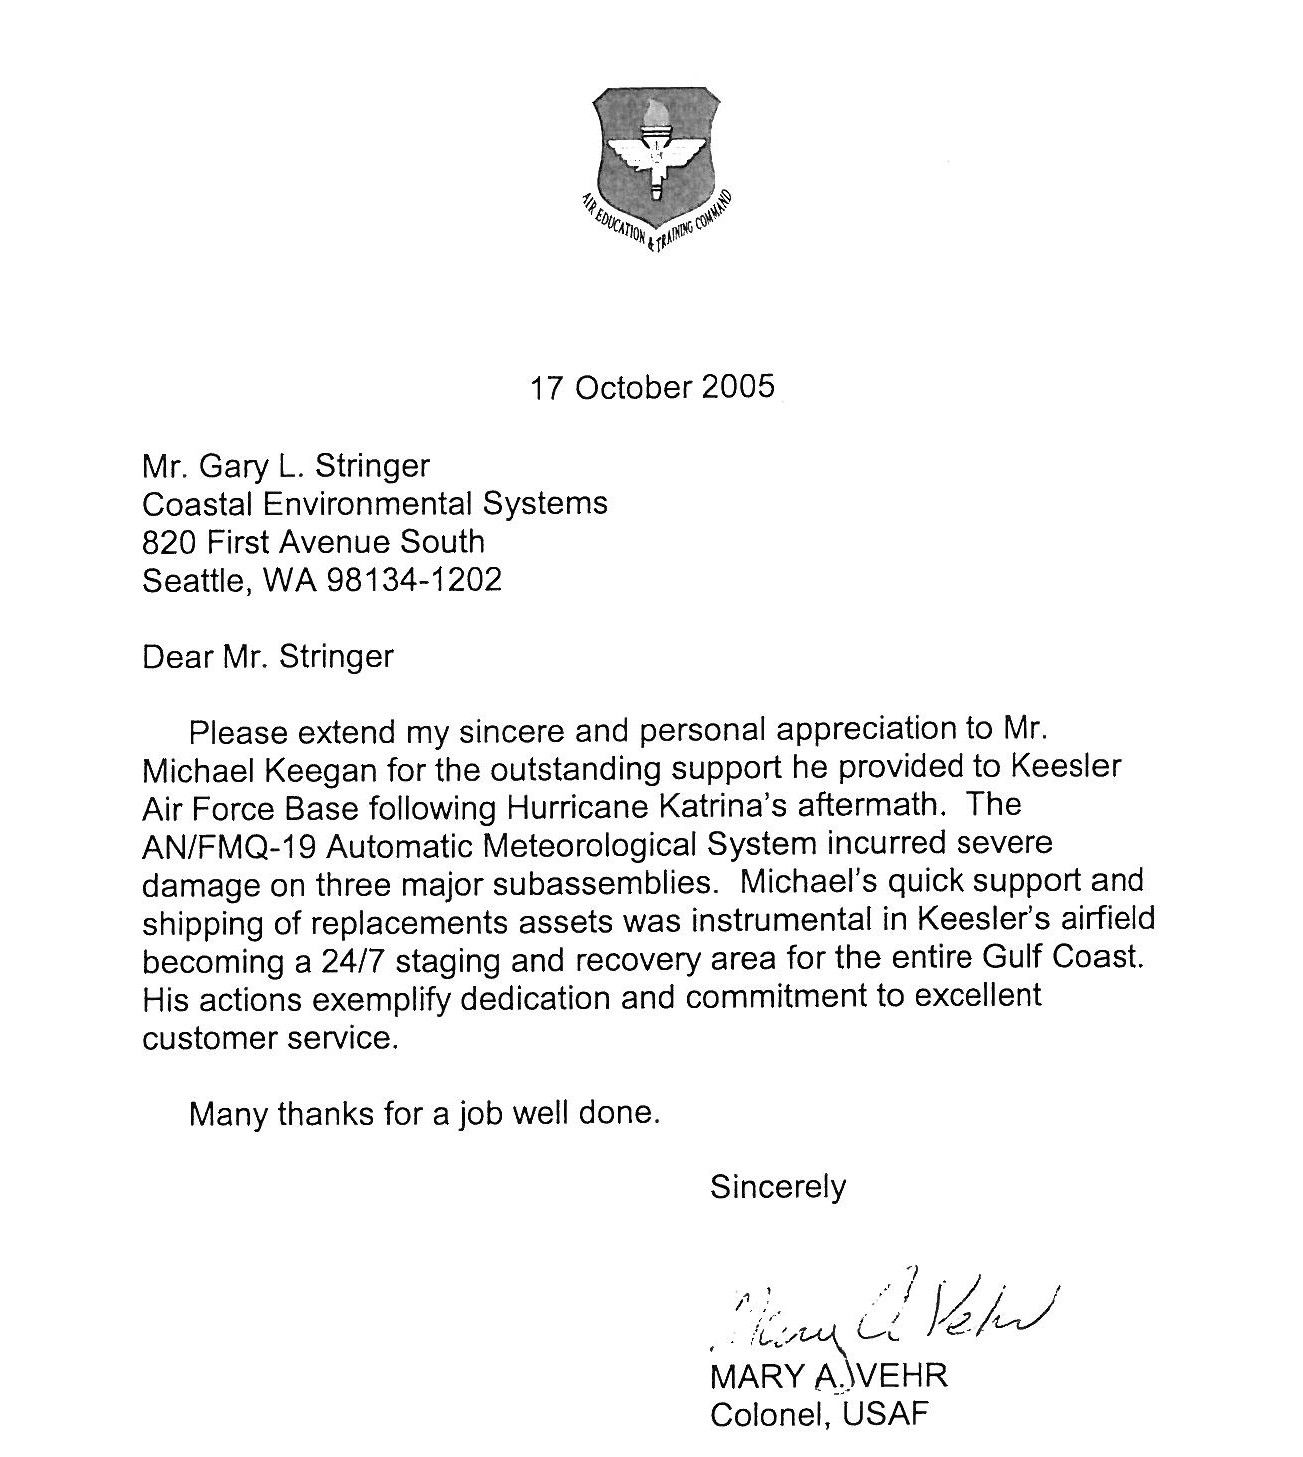 Appreciation Letter For Work Done Army Read More Good Training